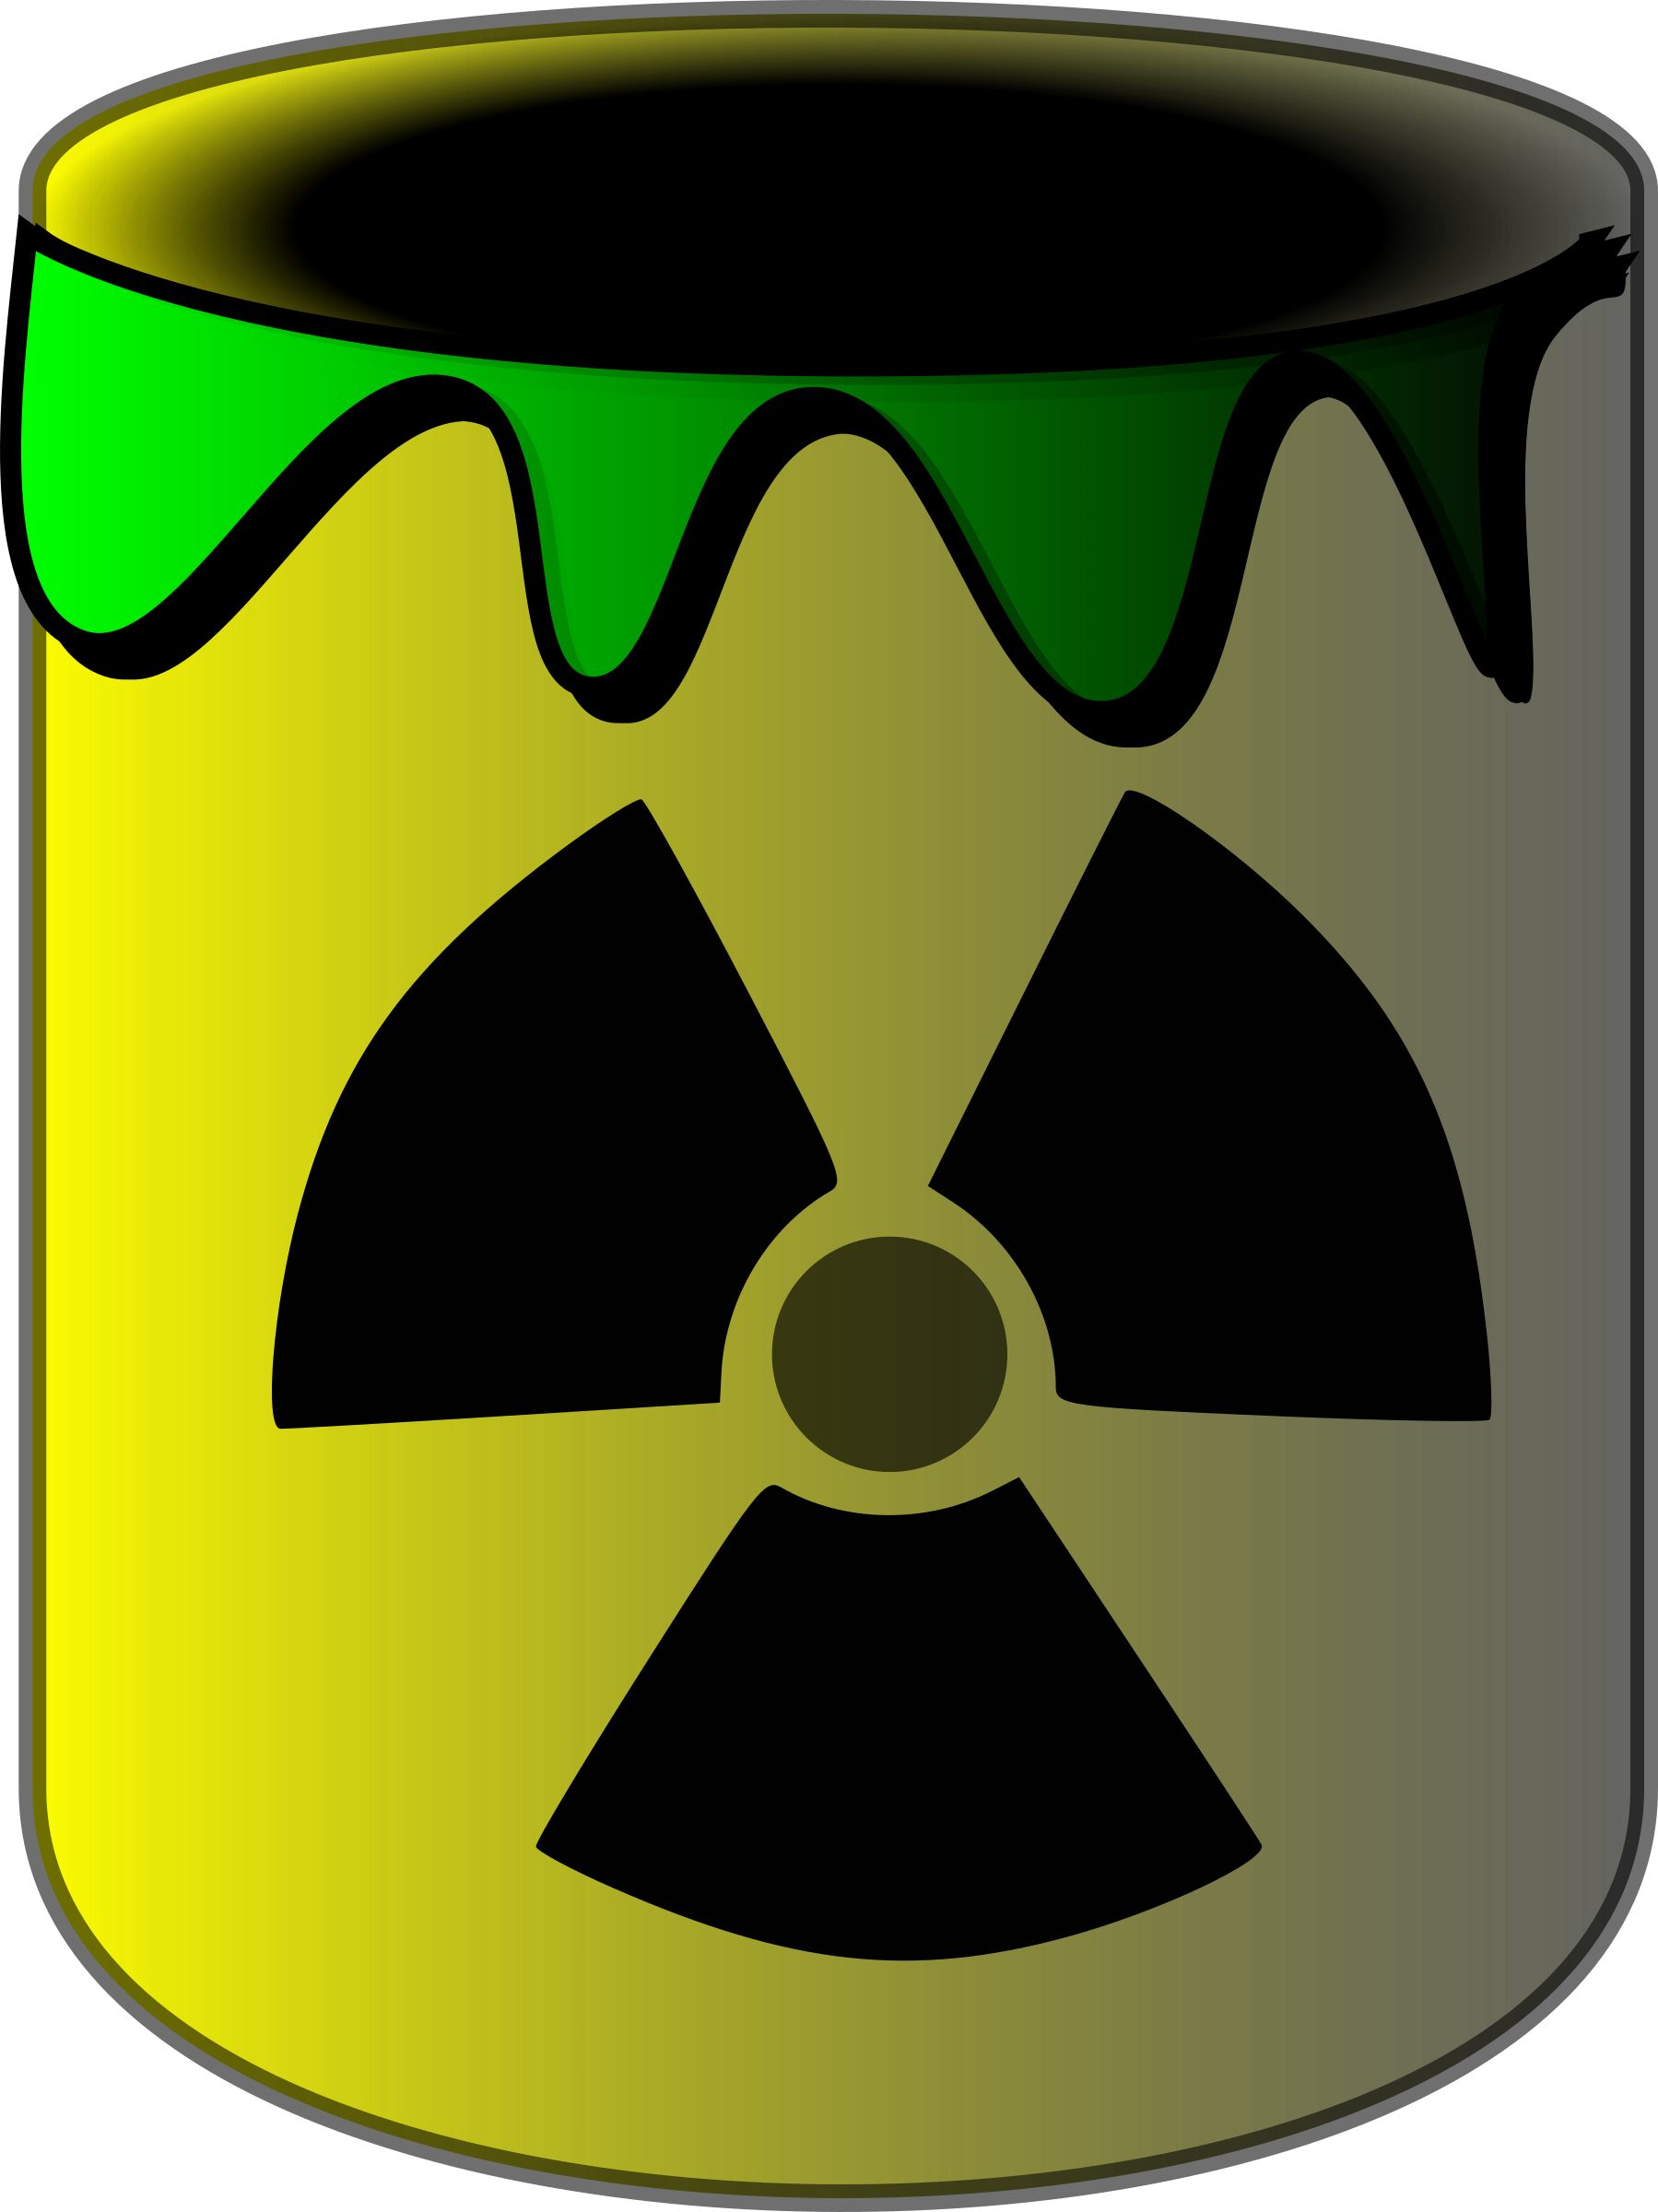 Radioactive clipart #5, Download drawings